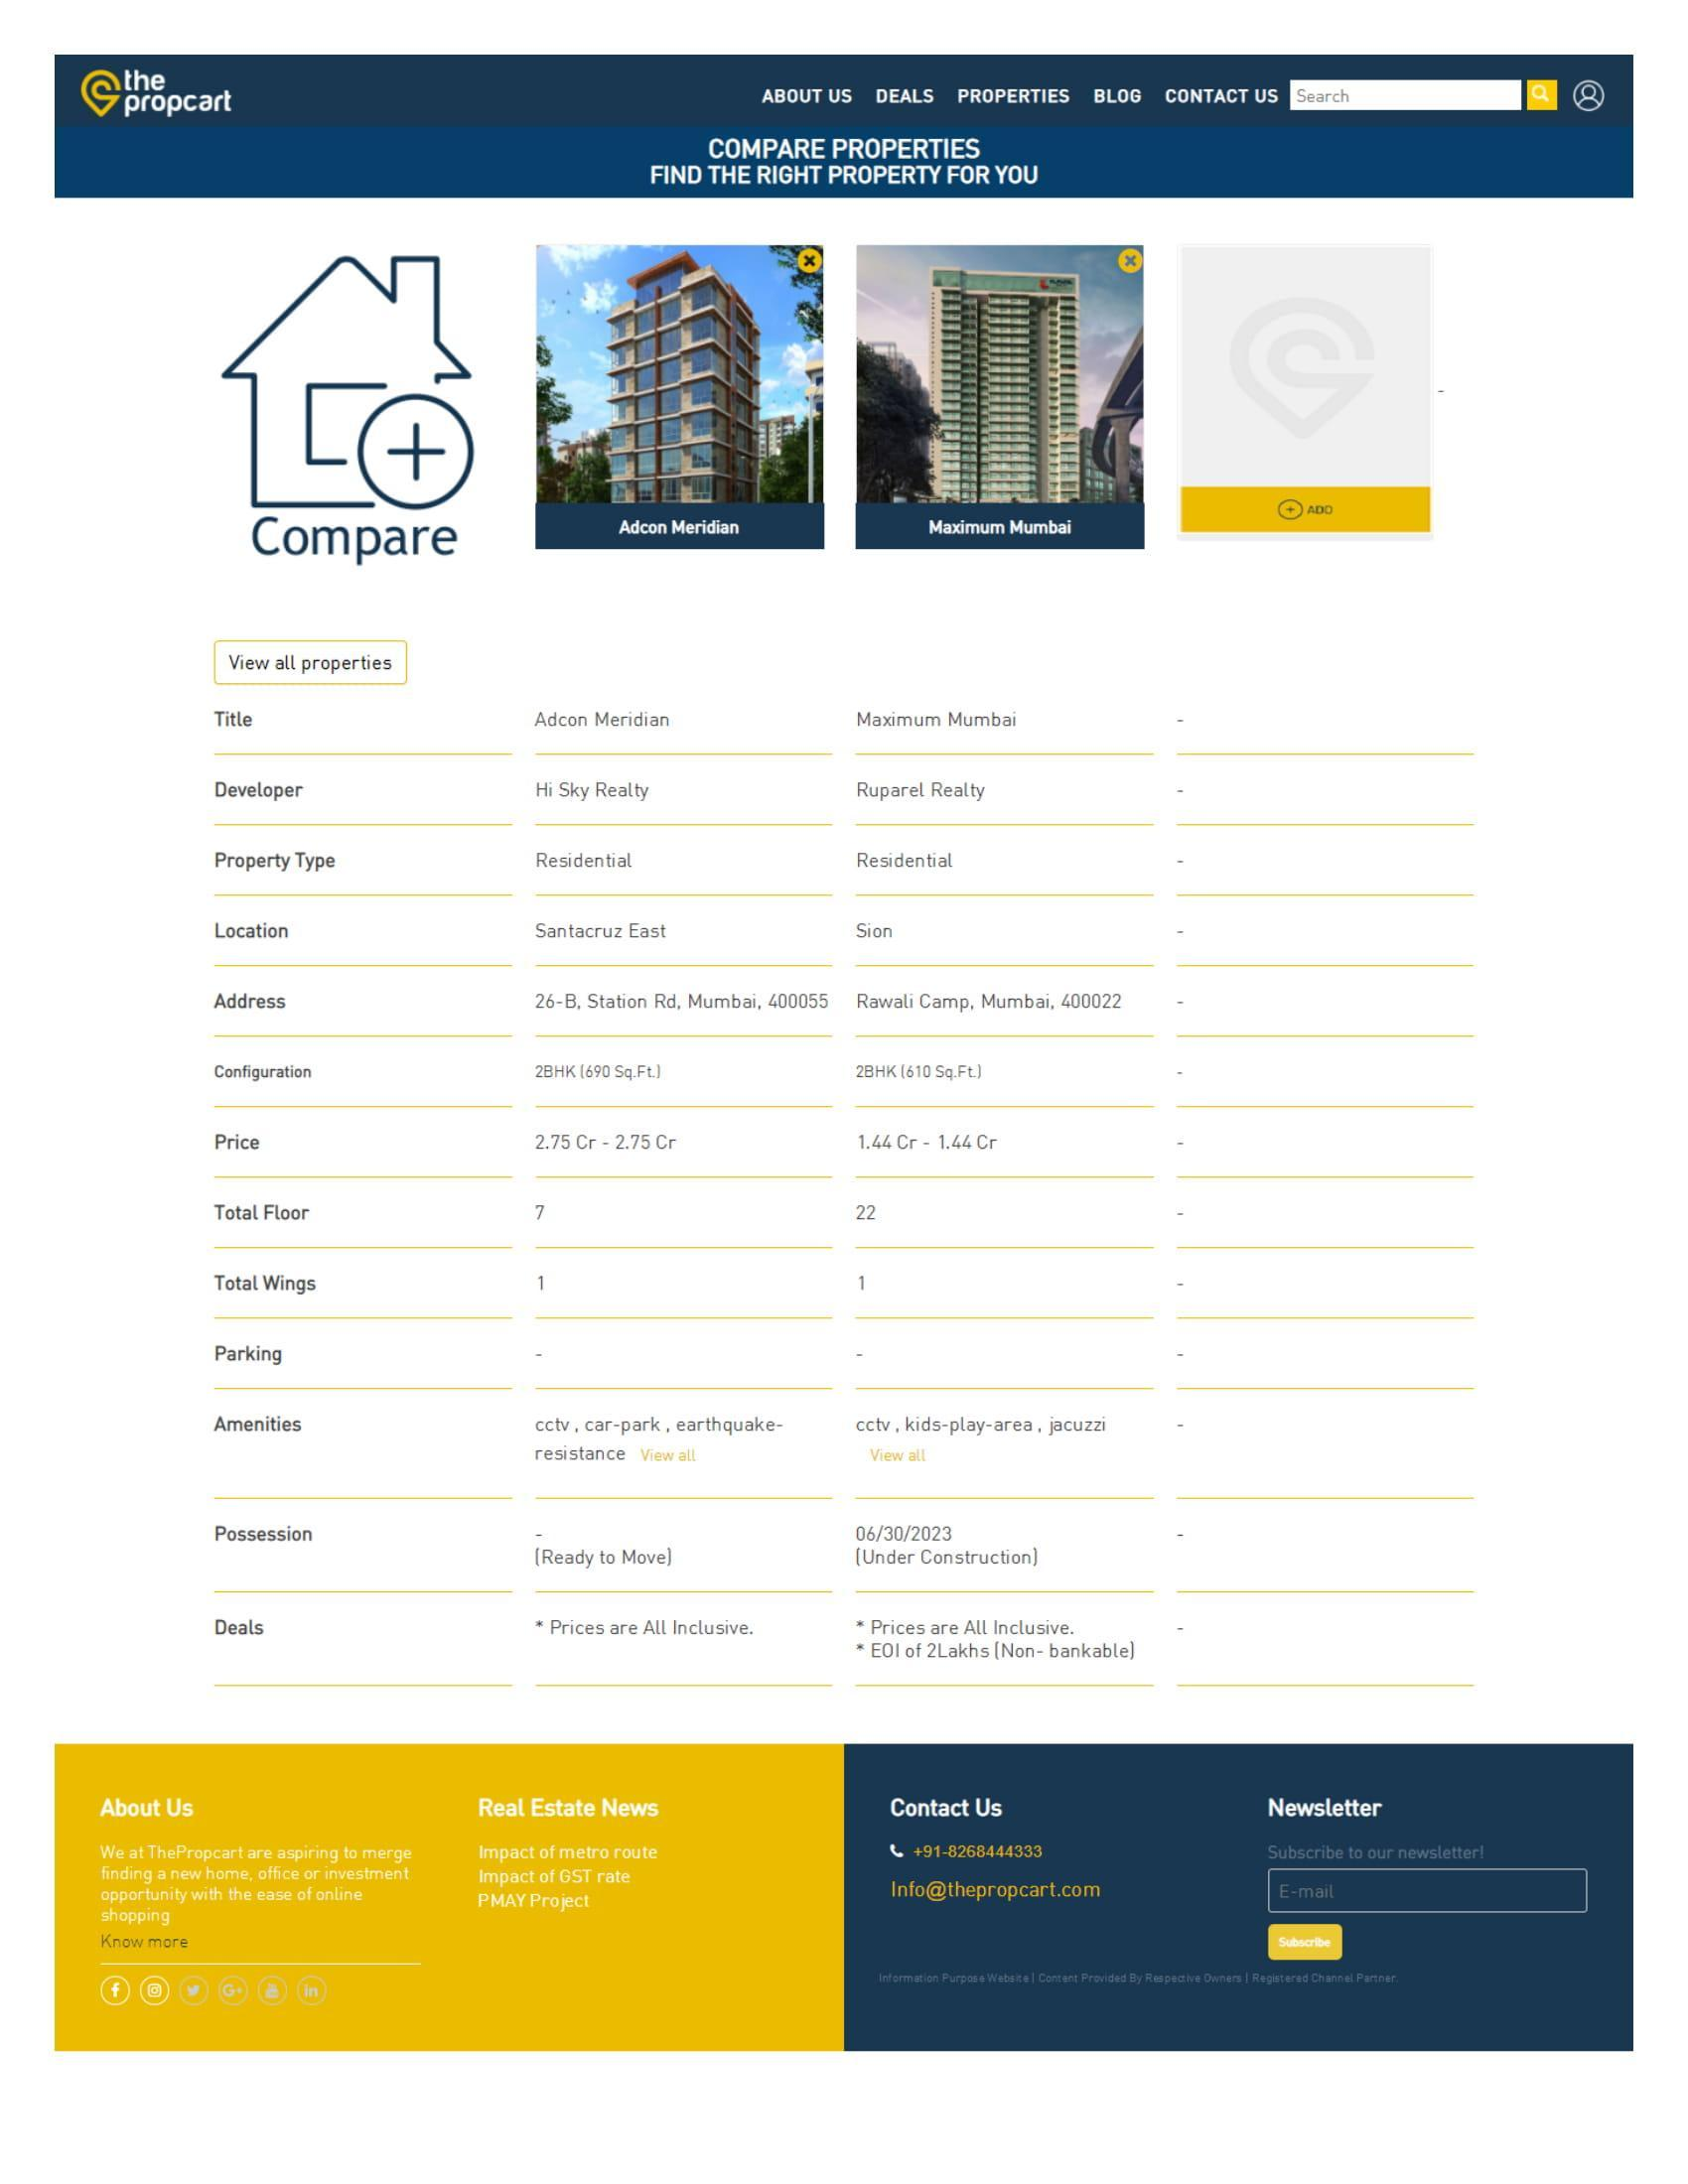 The Propcart - No.1 Real Estate Consultant